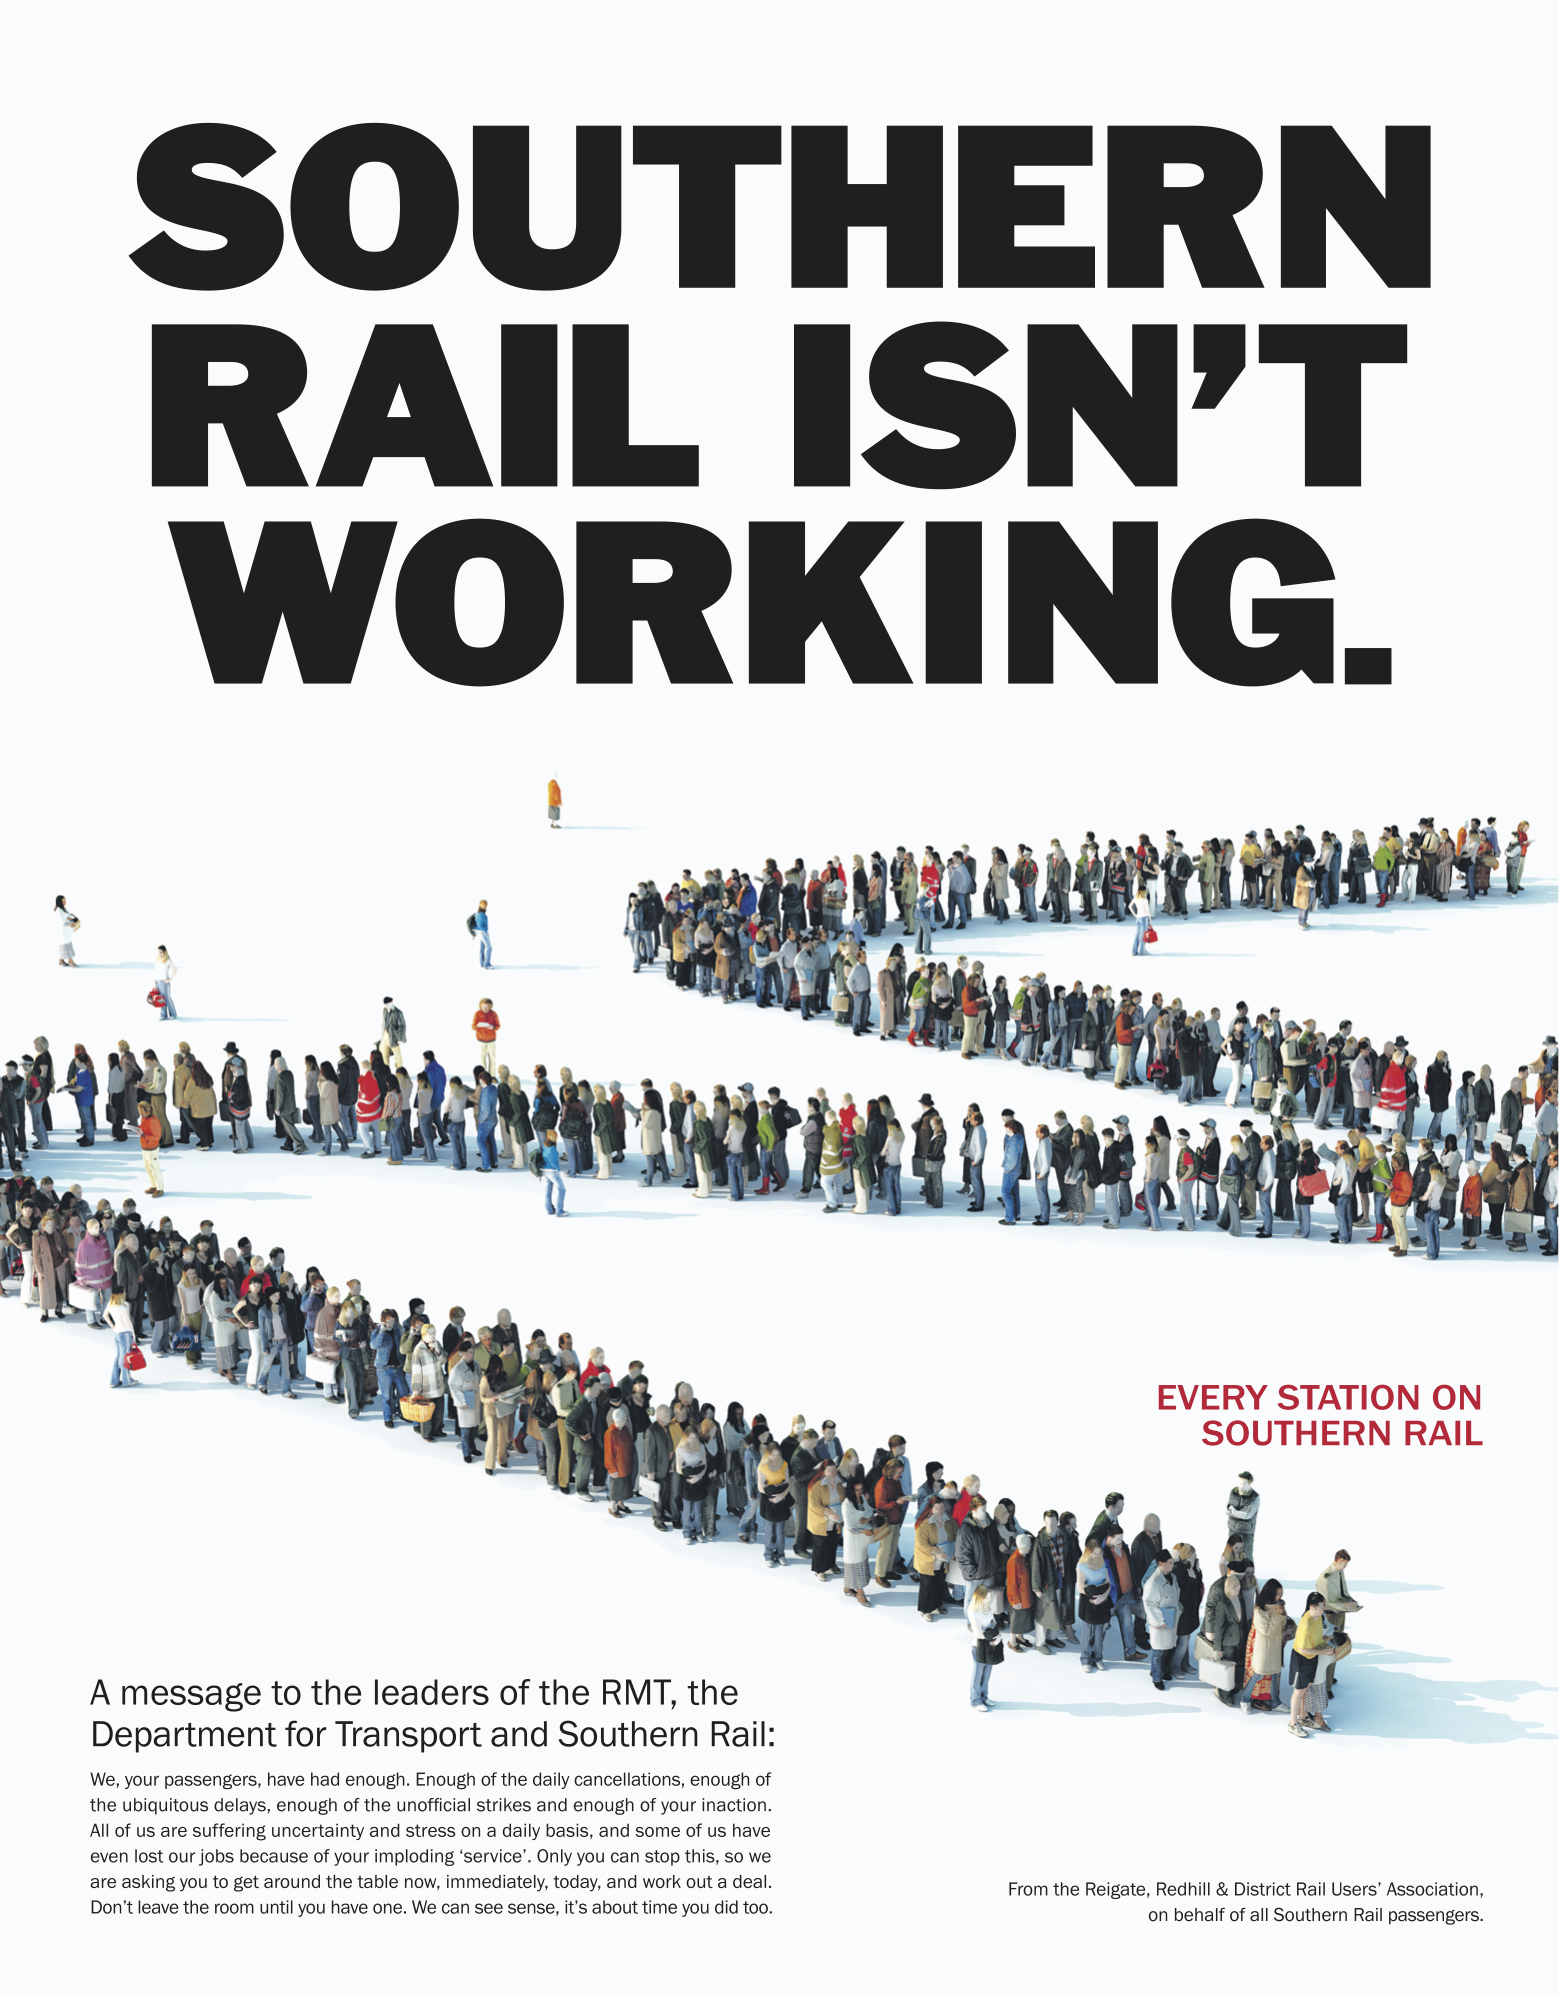 Southern Rails Isn't Working. A message to the leader of the RMT, the Department for Transport and Southern Rail